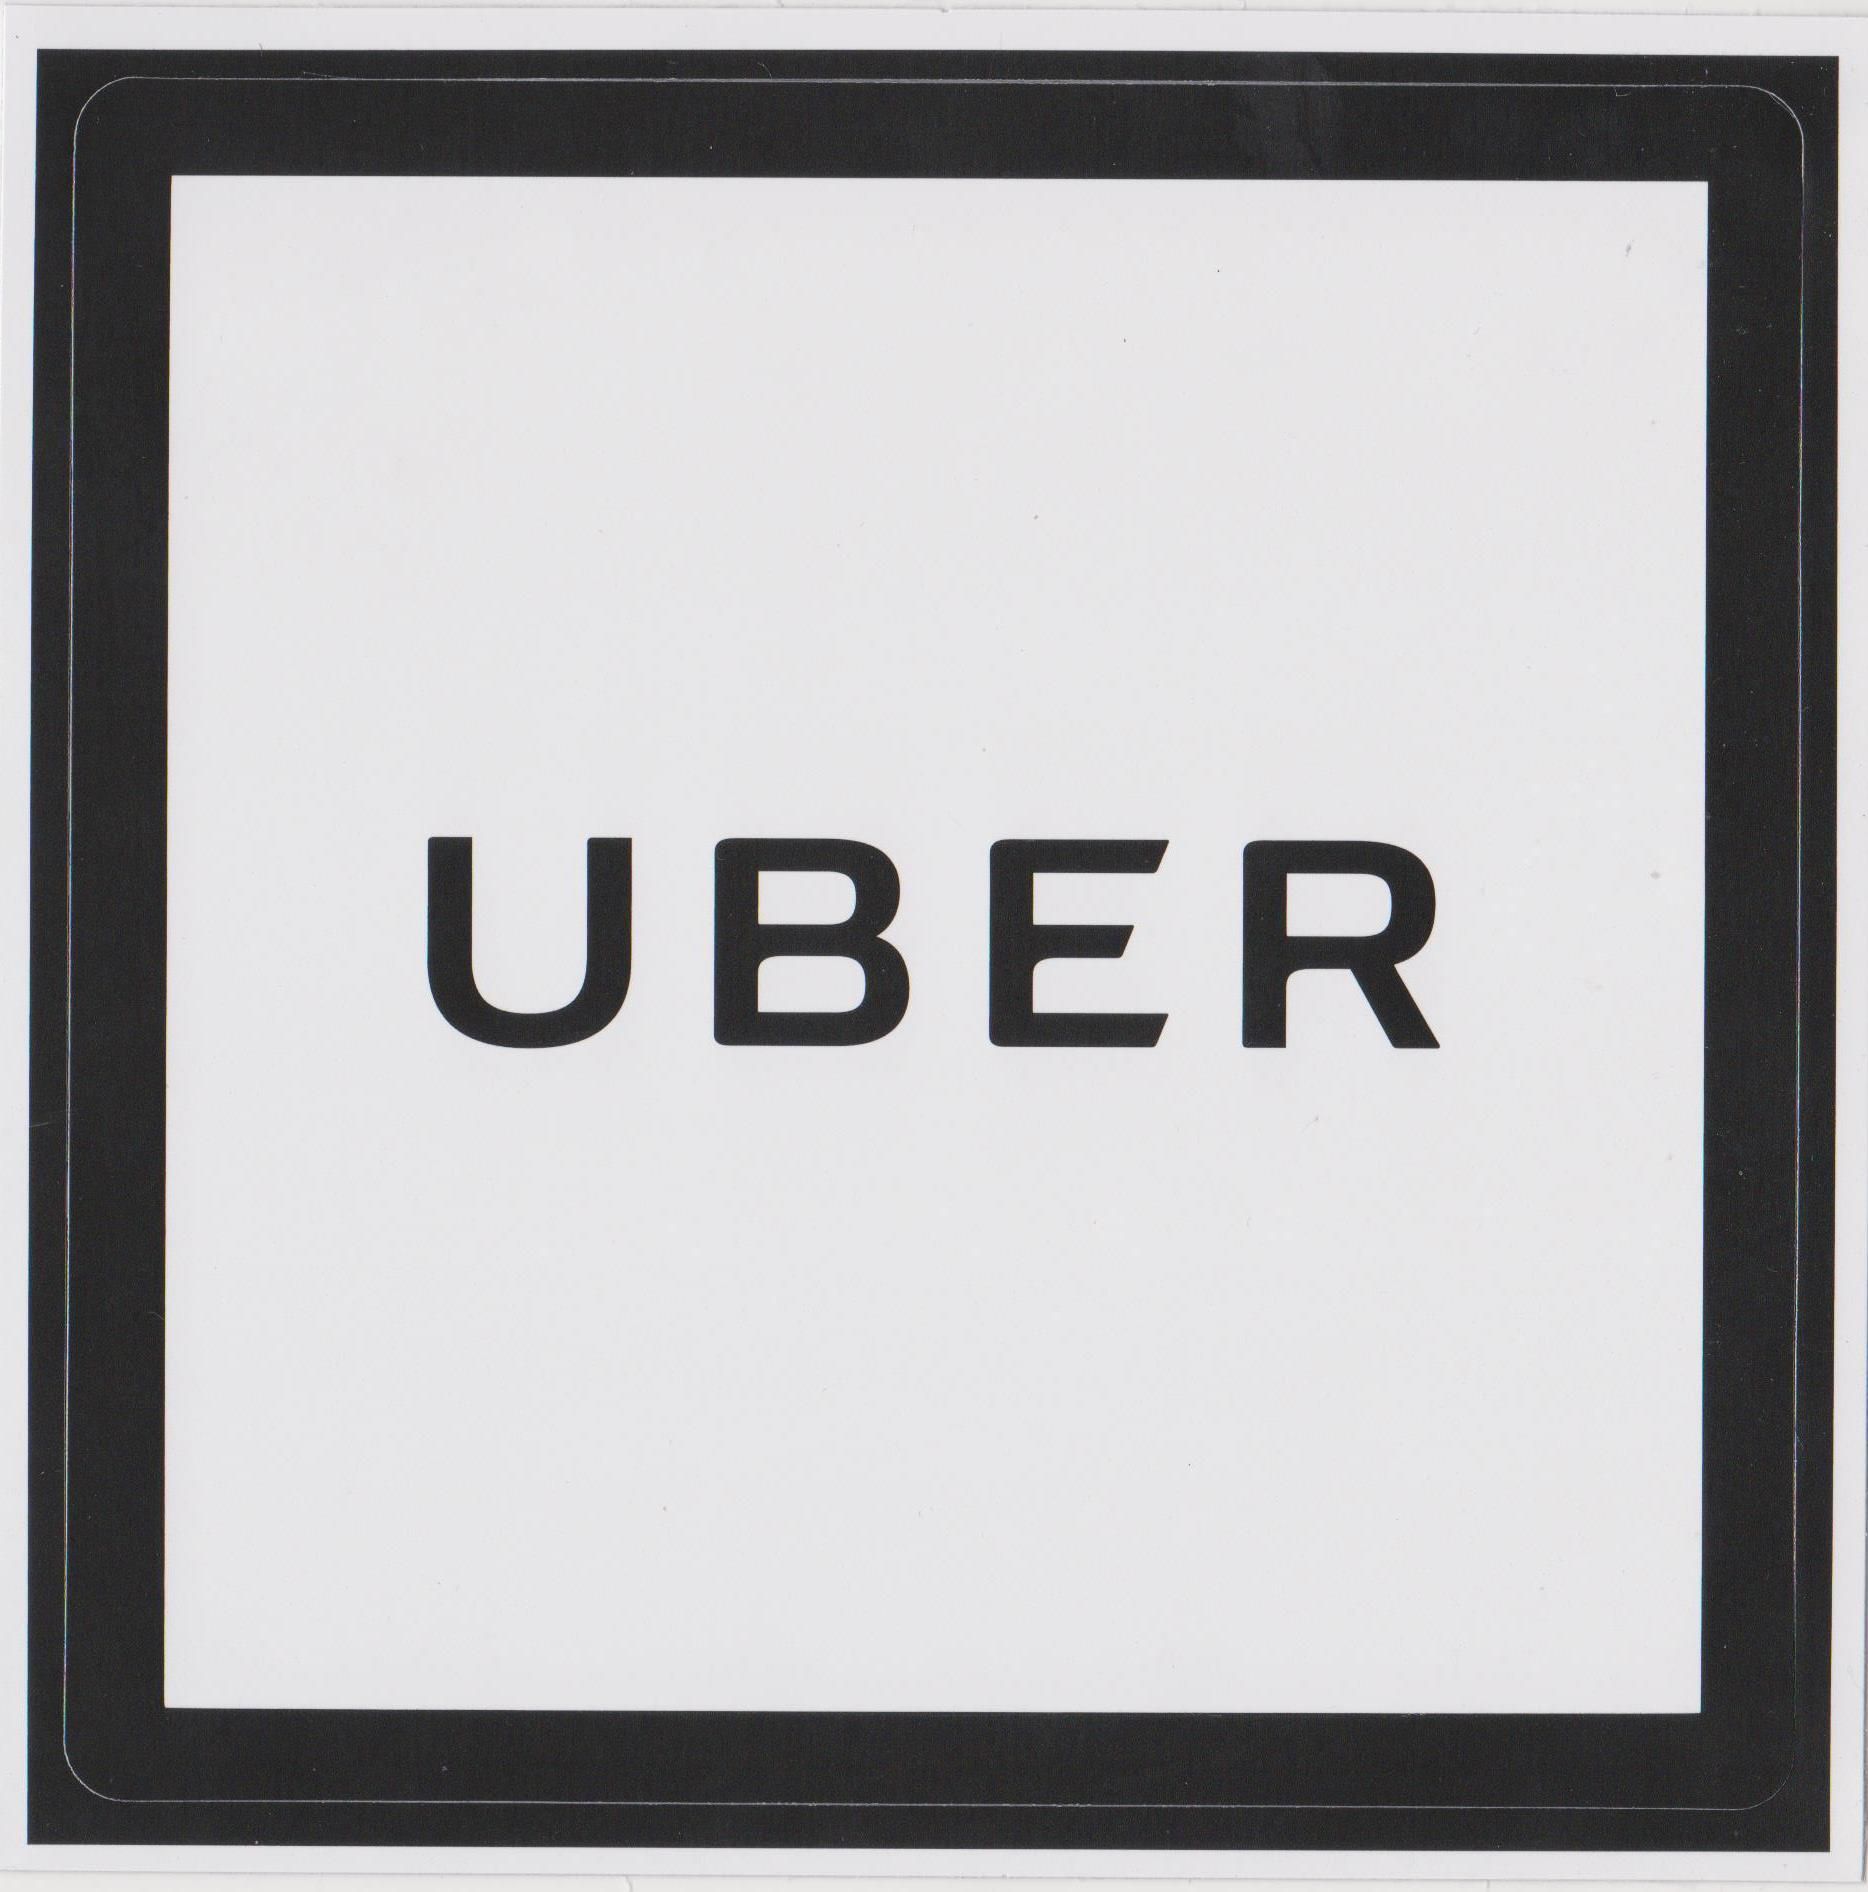 uber queensland archives rideshare guy. Black Bedroom Furniture Sets. Home Design Ideas